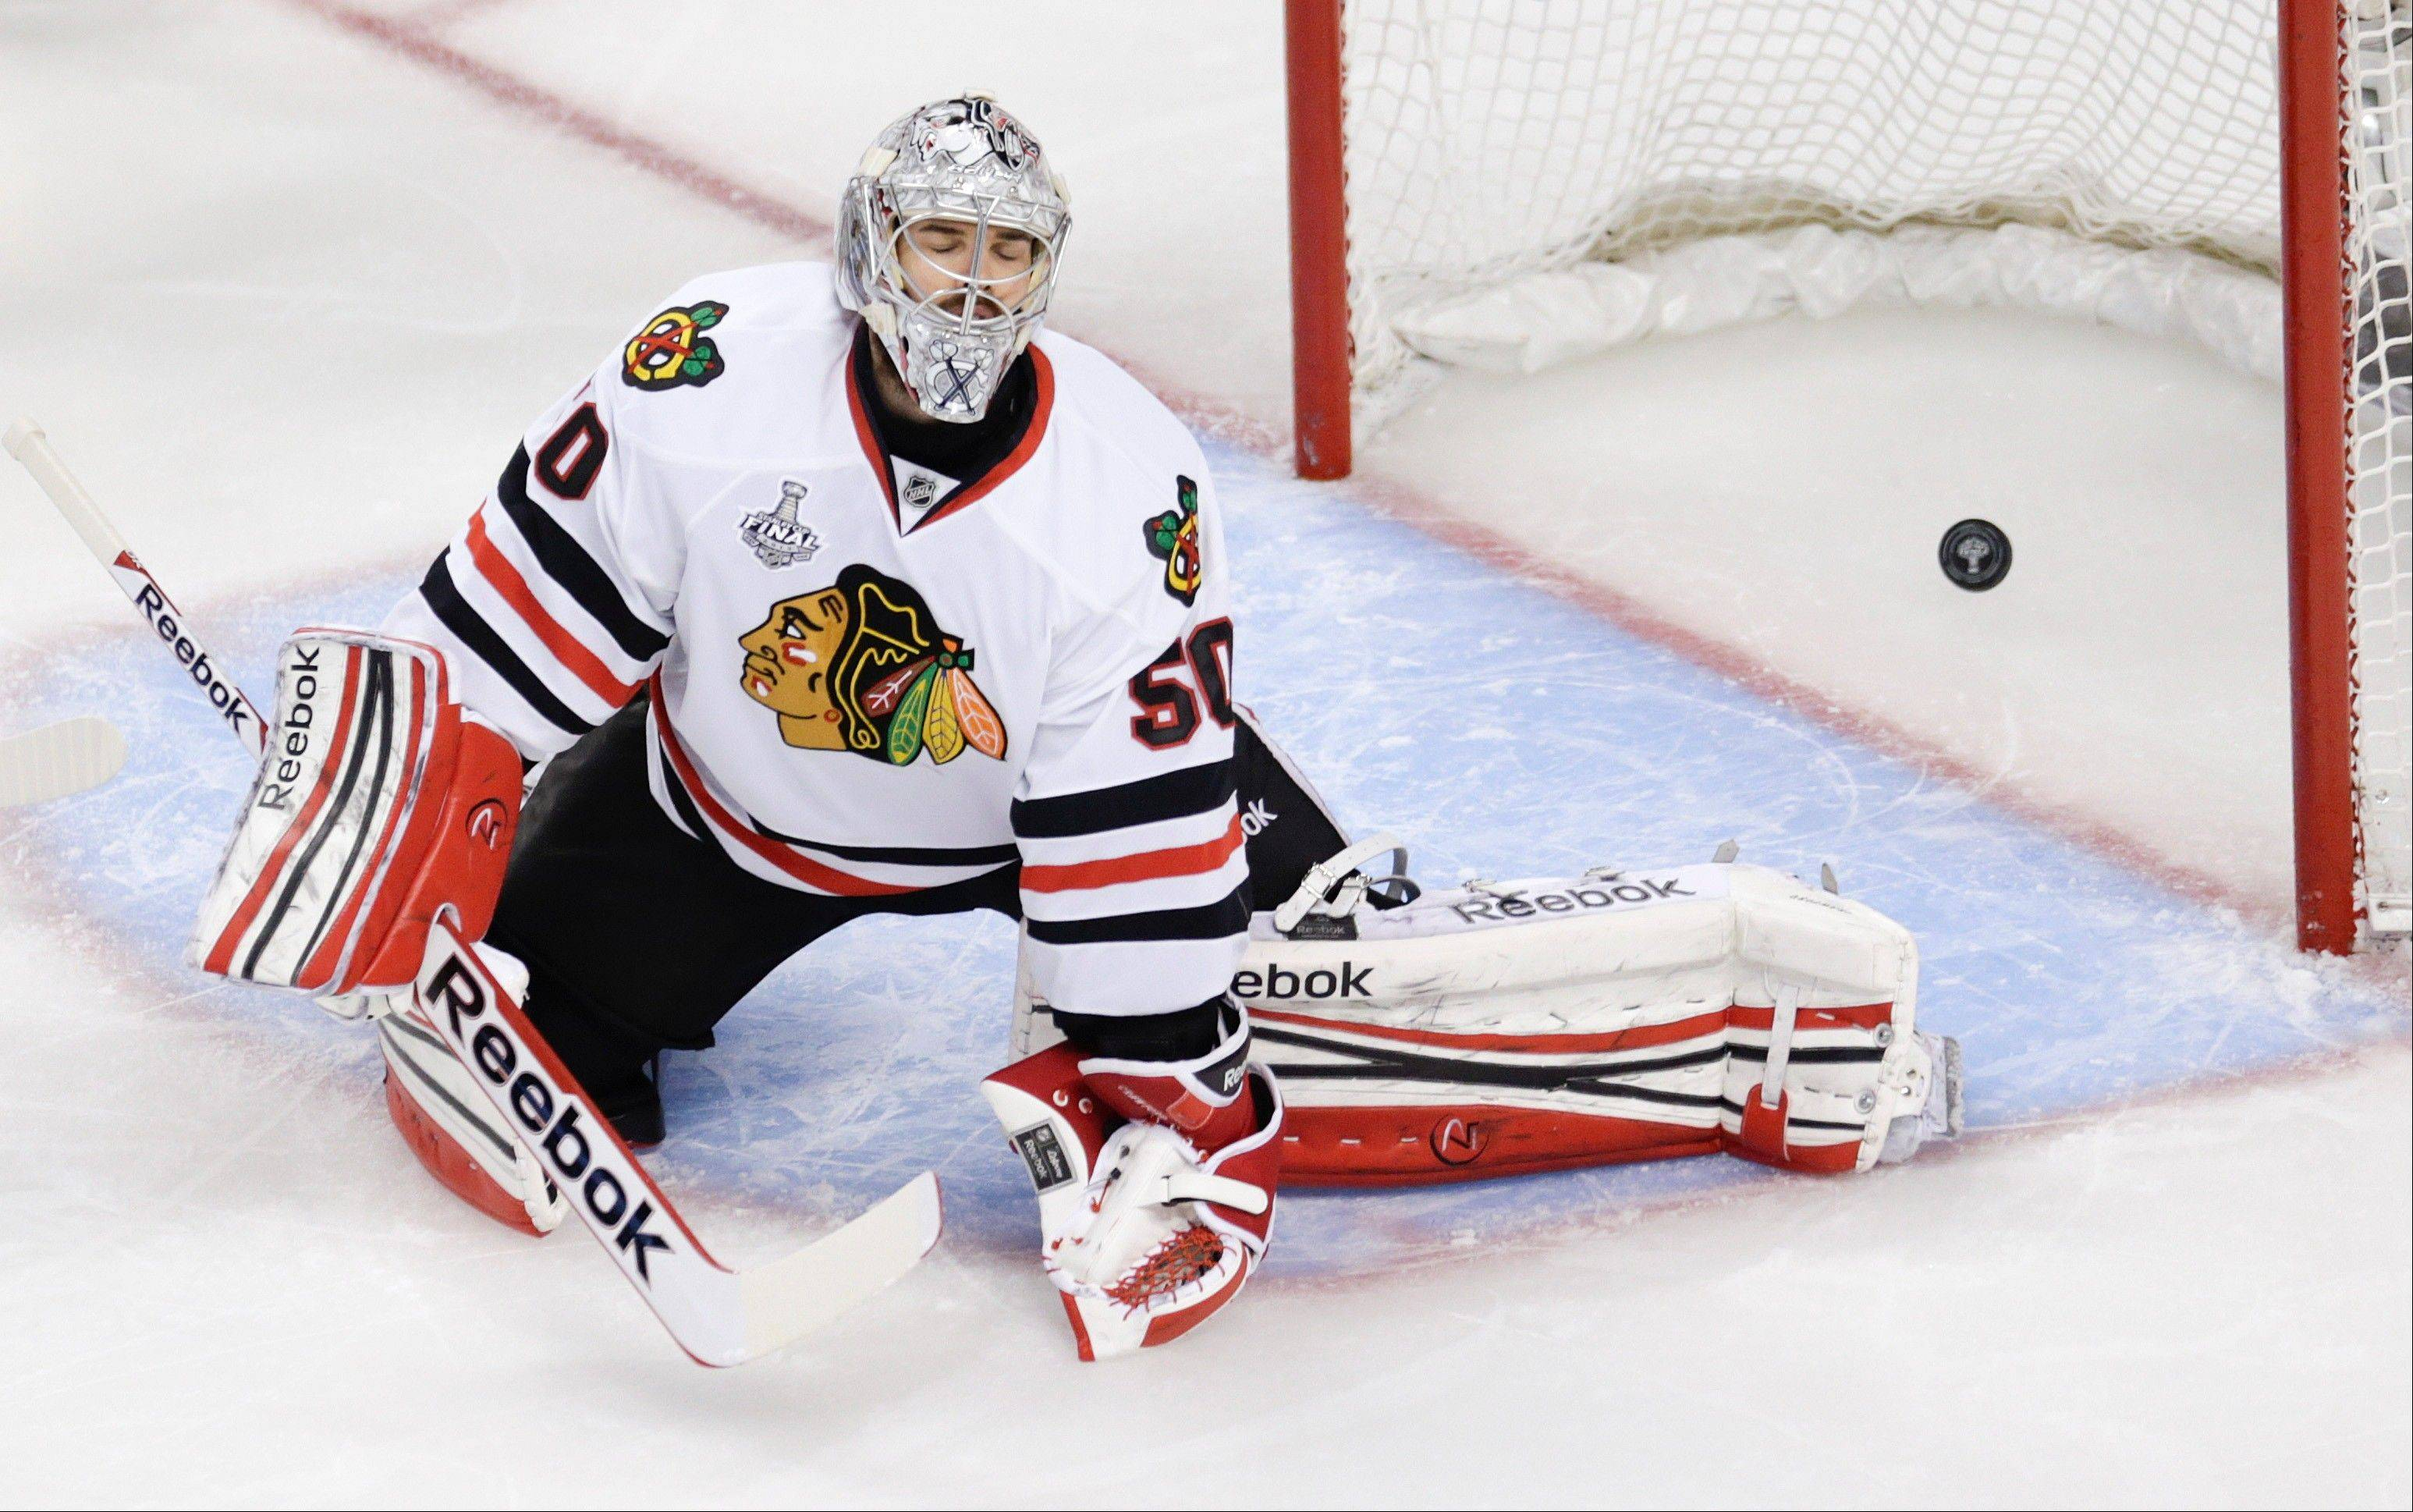 The puck, shot by Boston Bruins center Patrice Bergeron, not seen, sails past Chicago Blackhawks goalie Corey Crawford (50) for a goal during the third period in Game 4 of the NHL hockey Stanley Cup Finals.